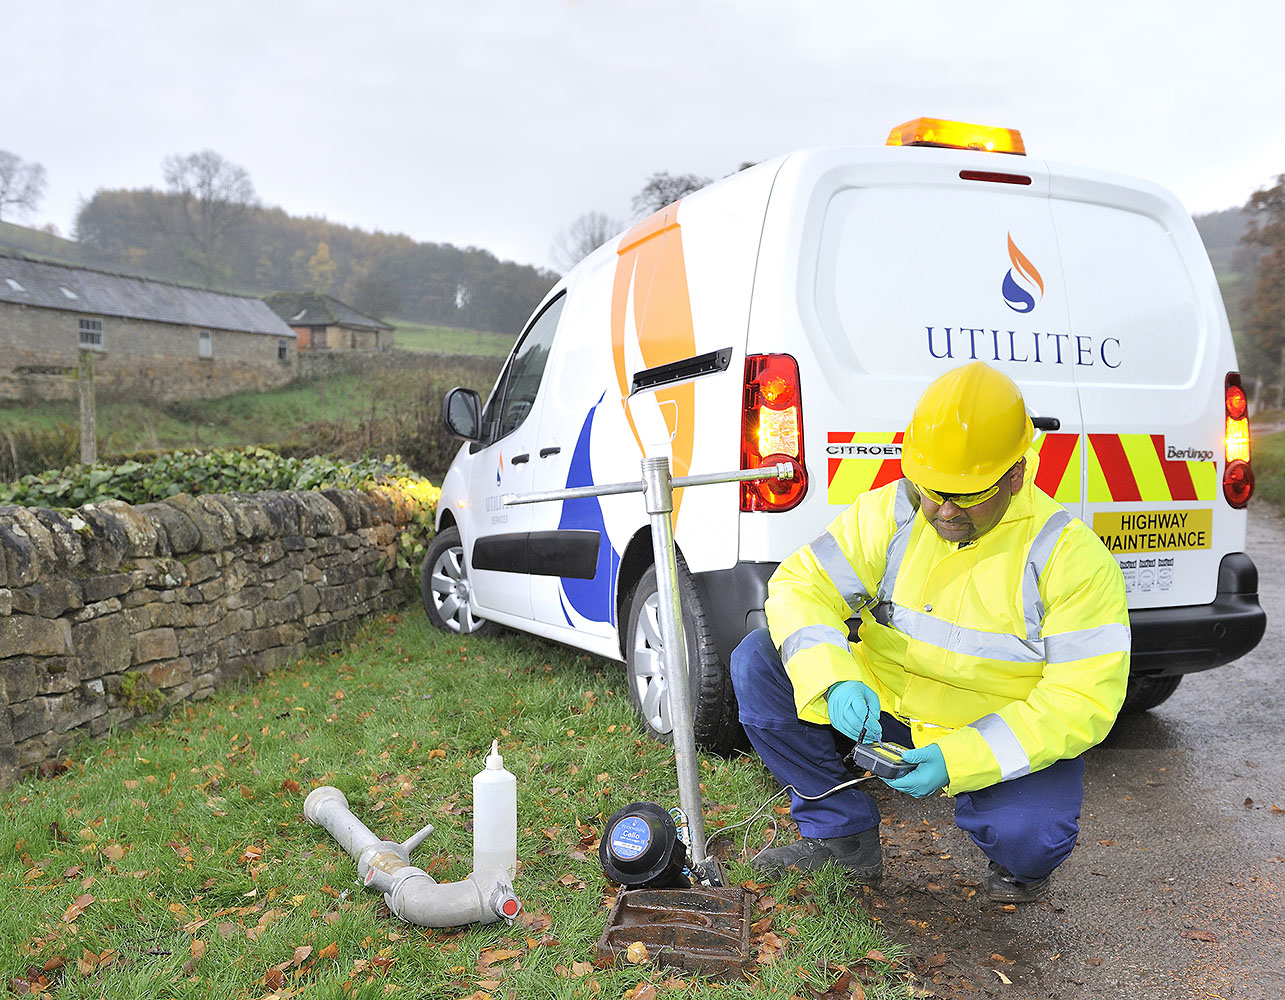 Location photography, engineer works next to his van in a rural locaction